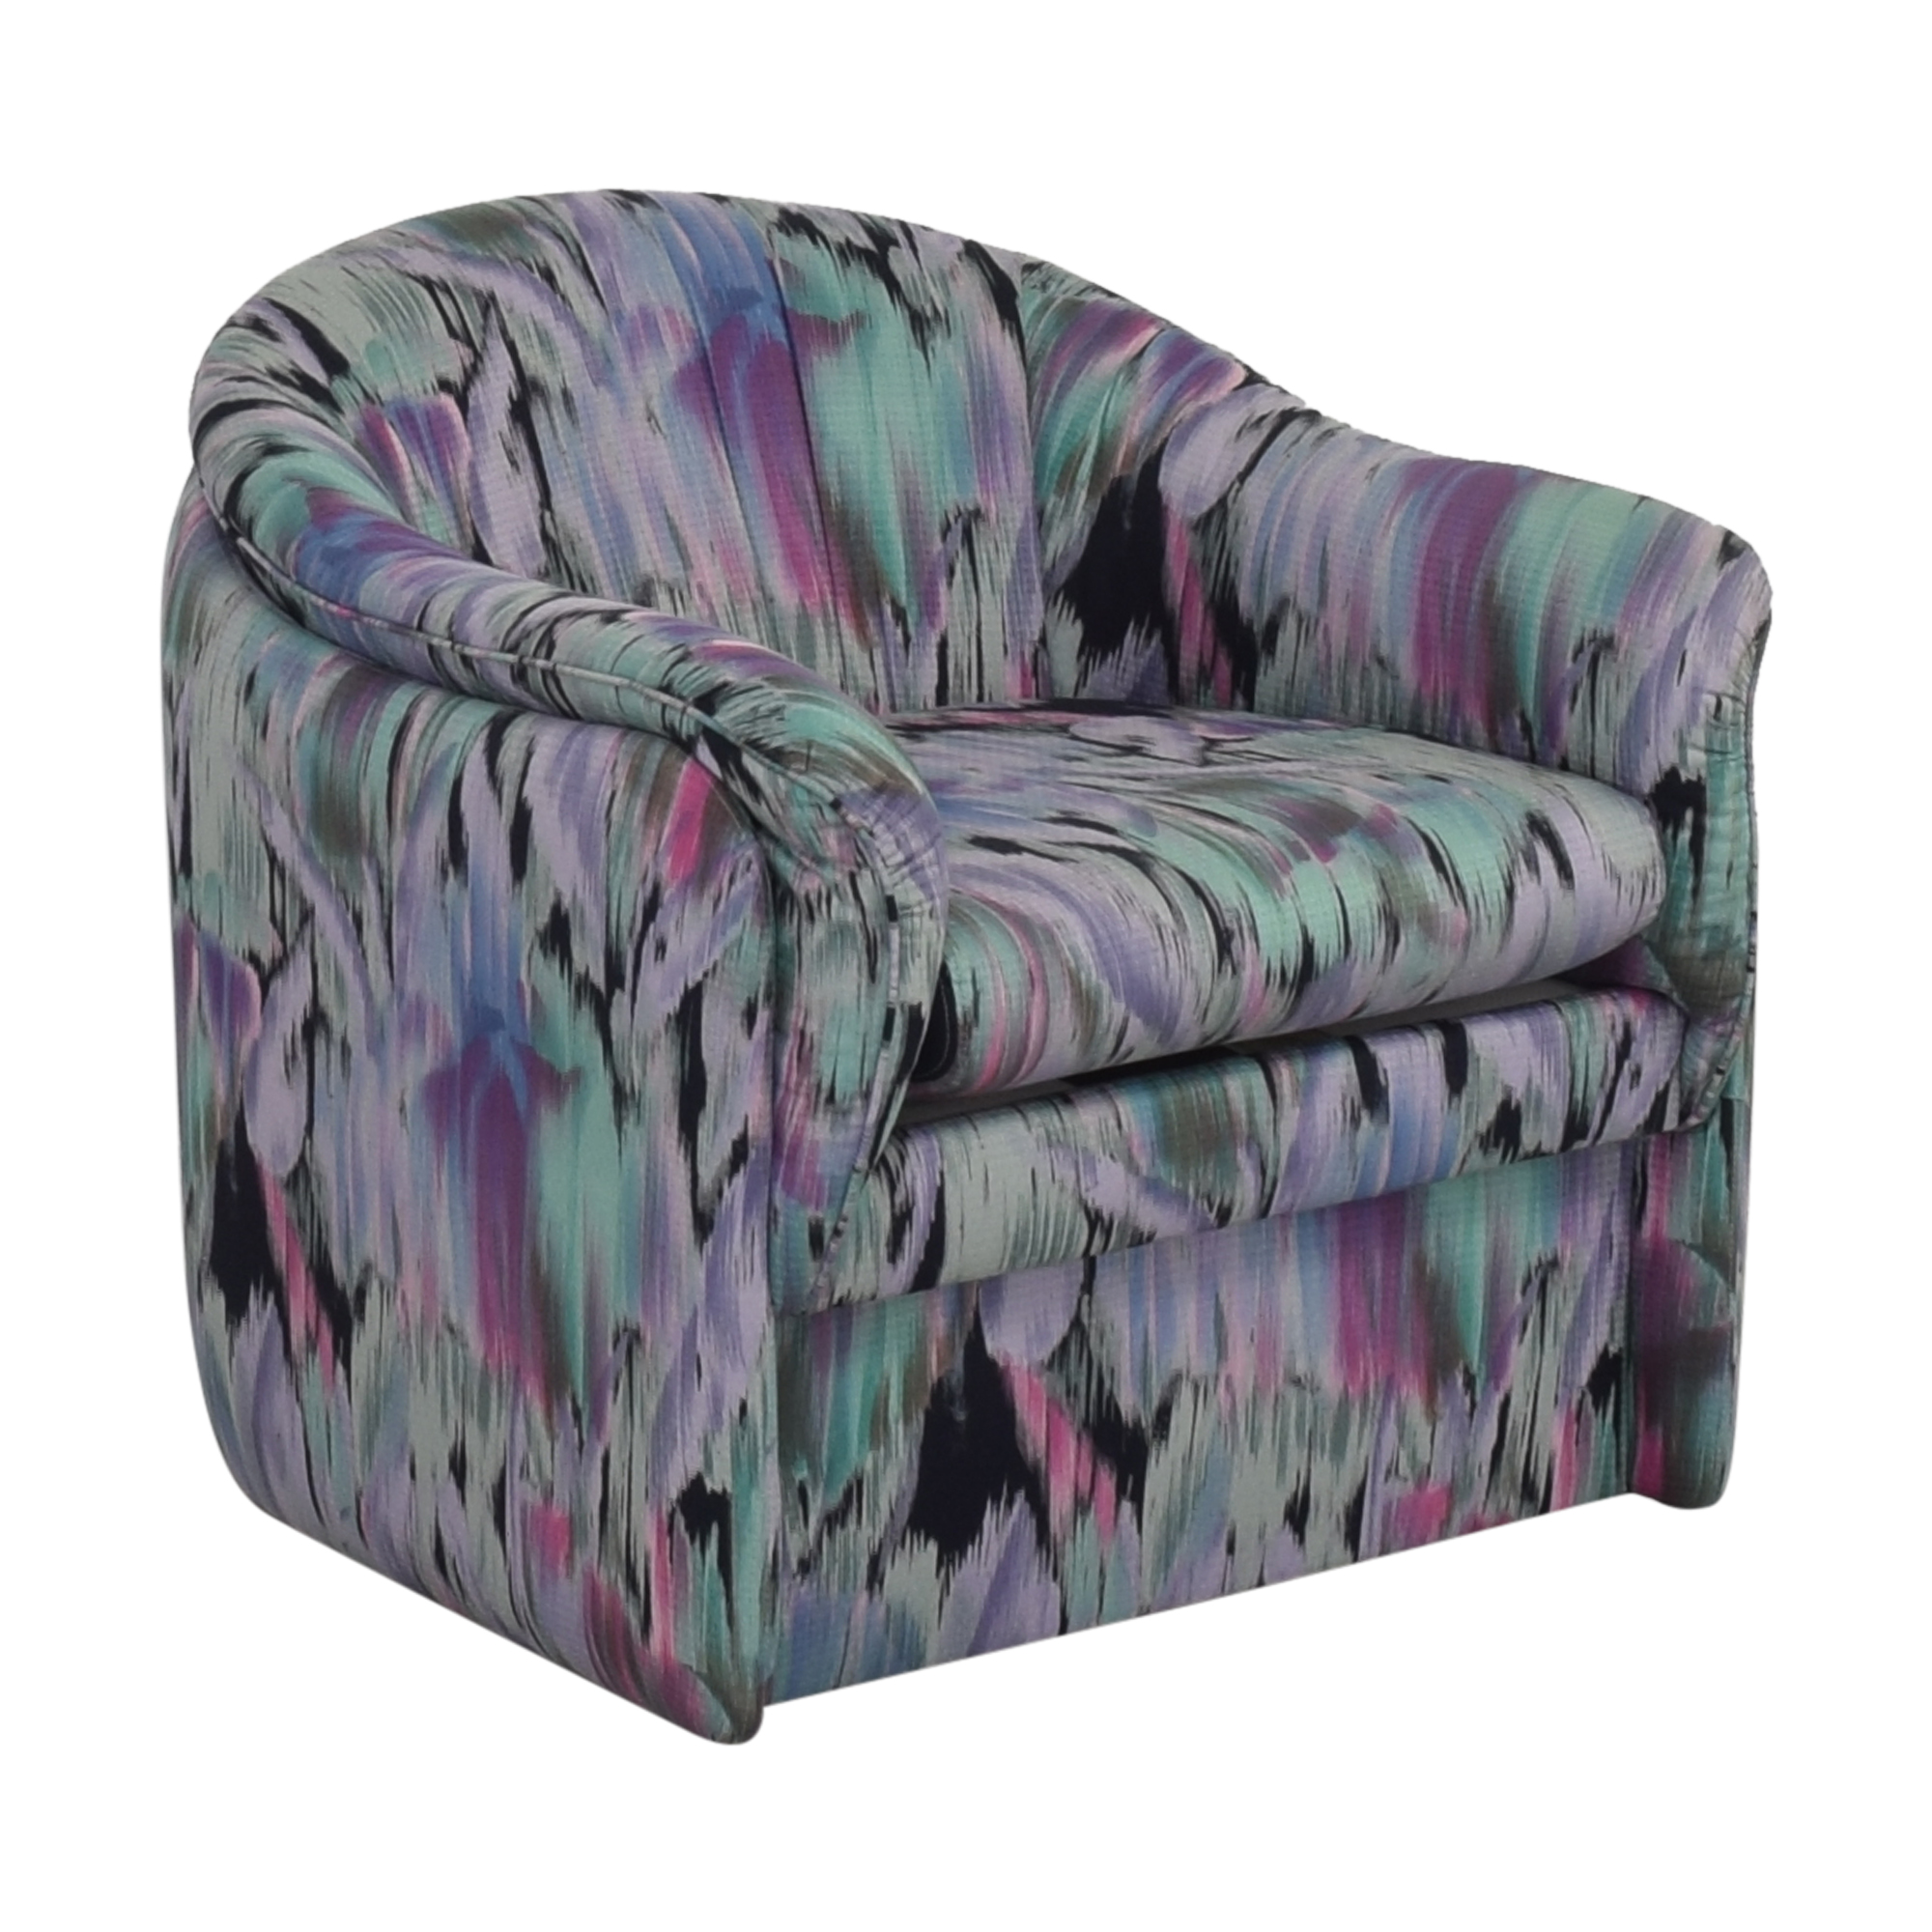 Preview Furniture Preview Furniture Swivel Accent Chair on sale